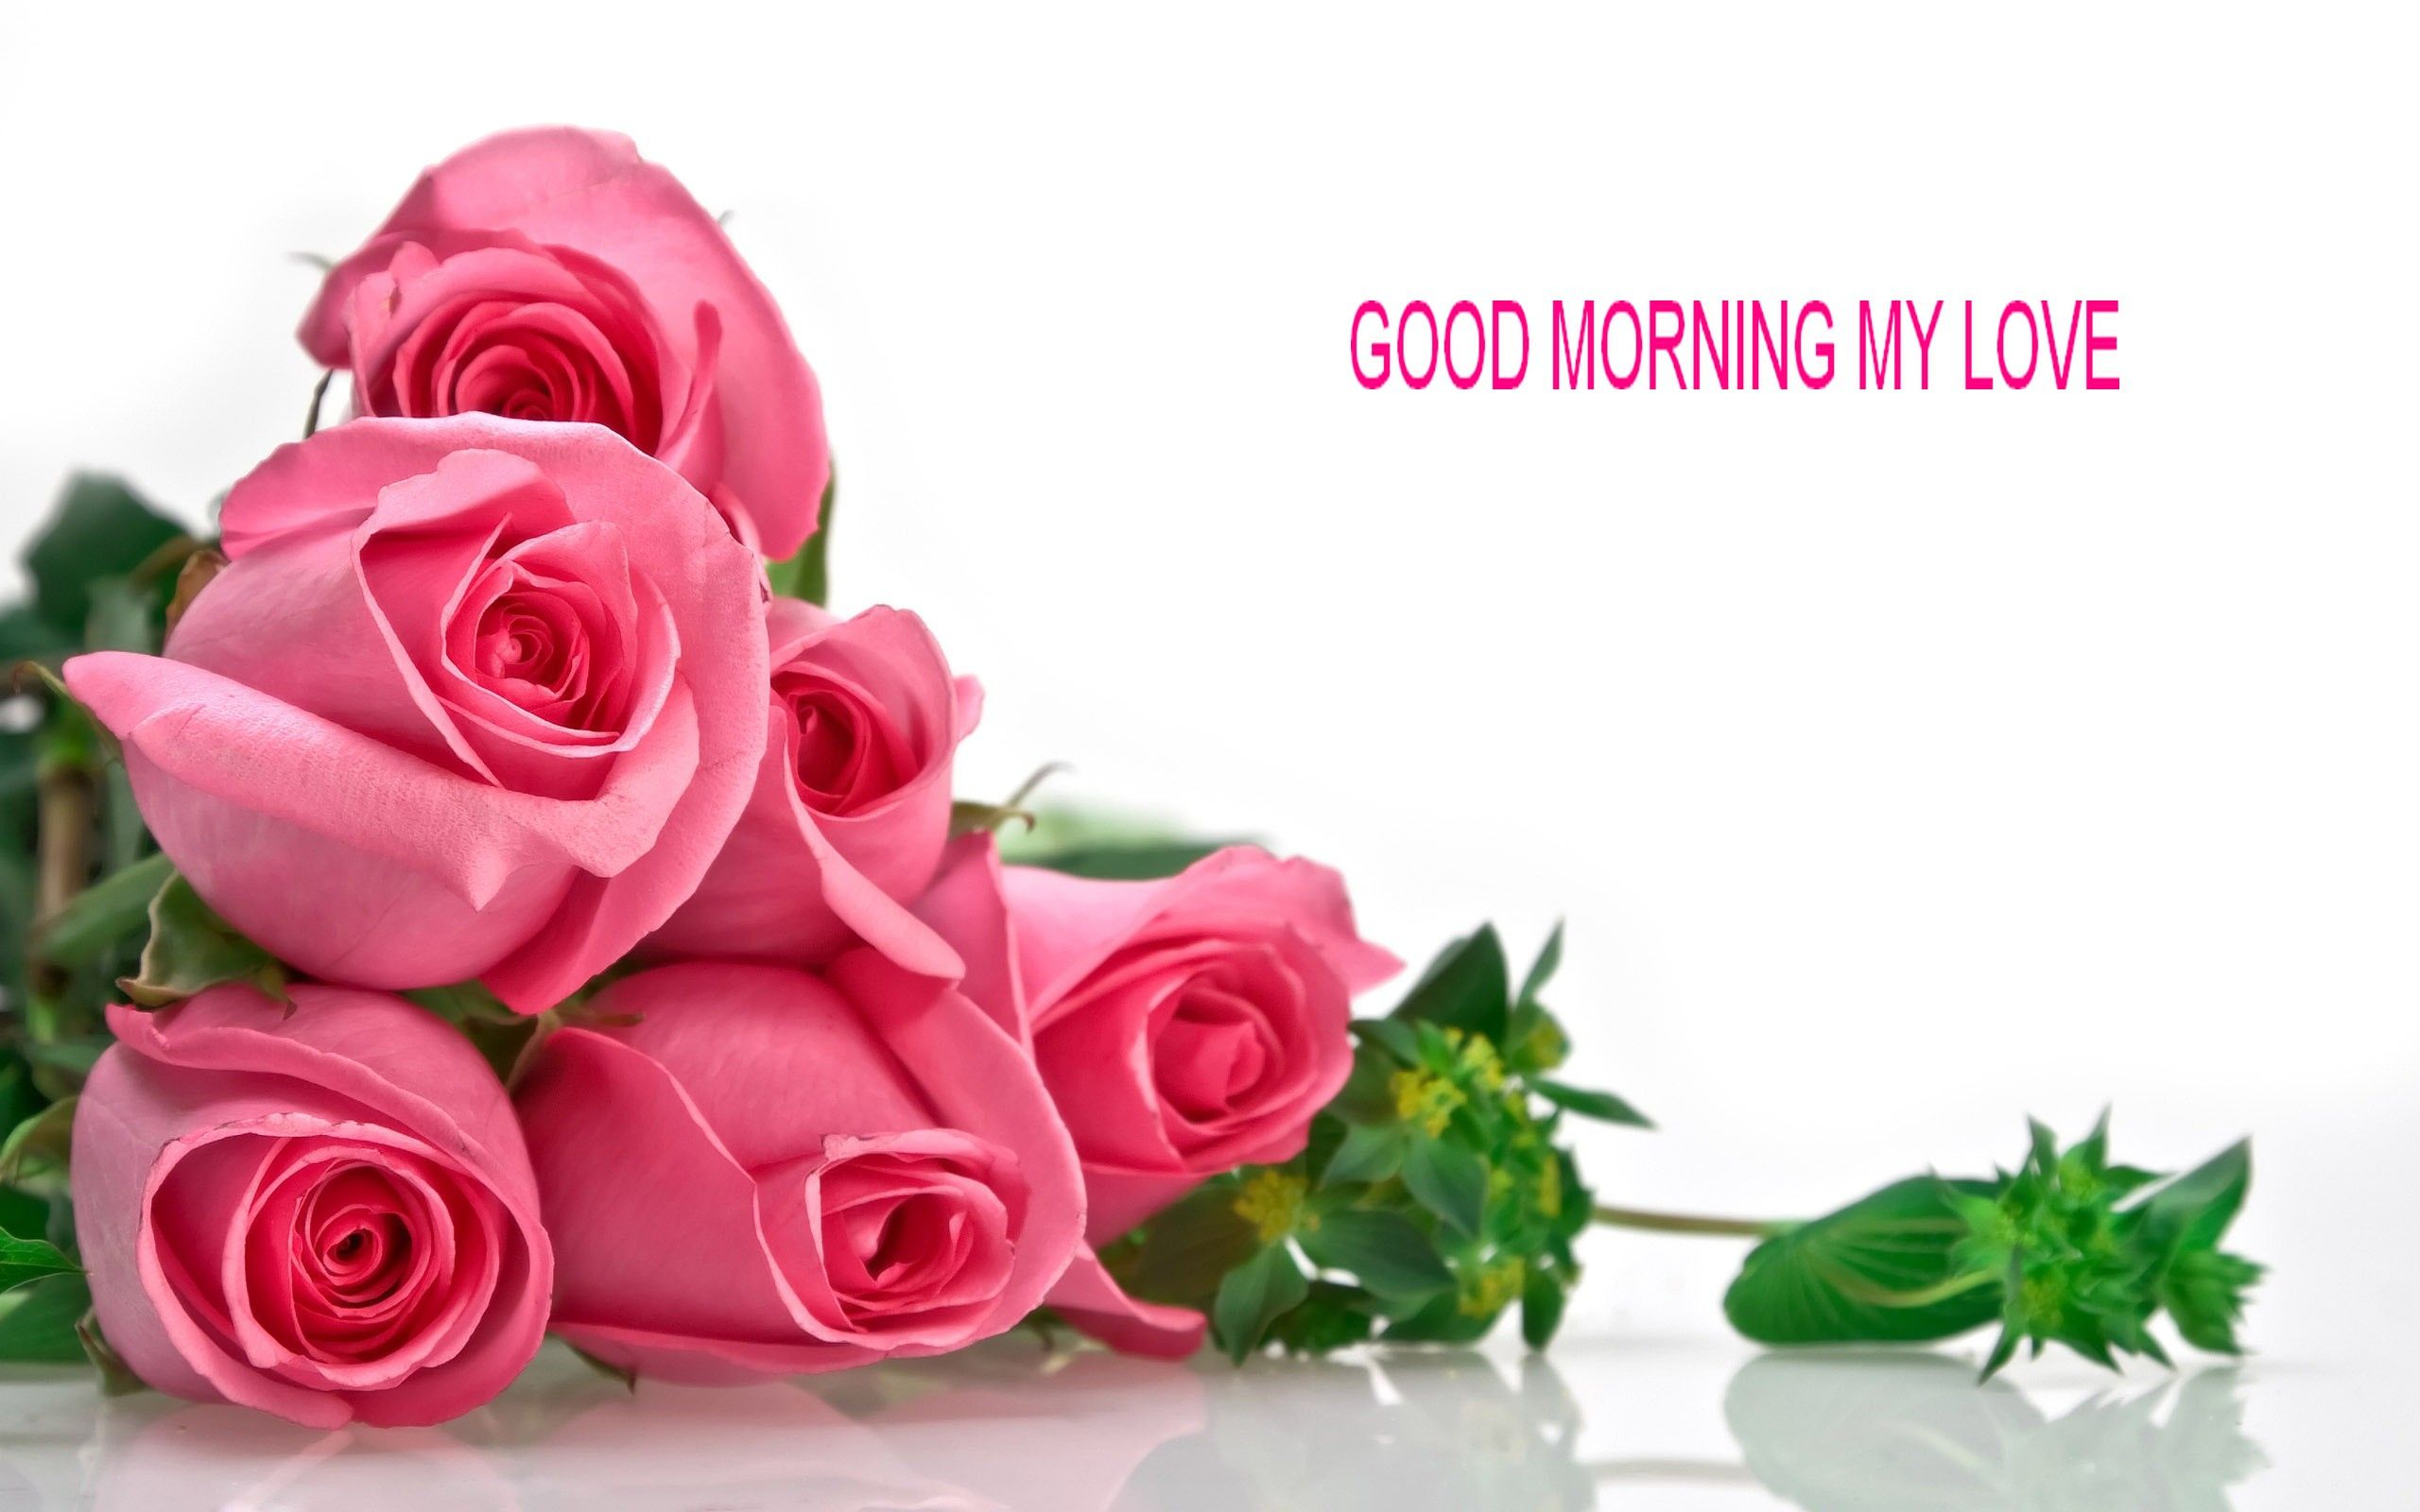 Good Morning Rose Wallpapers Free Download Rose Flower Wallpaper Flower Wallpaper Rose Wallpaper